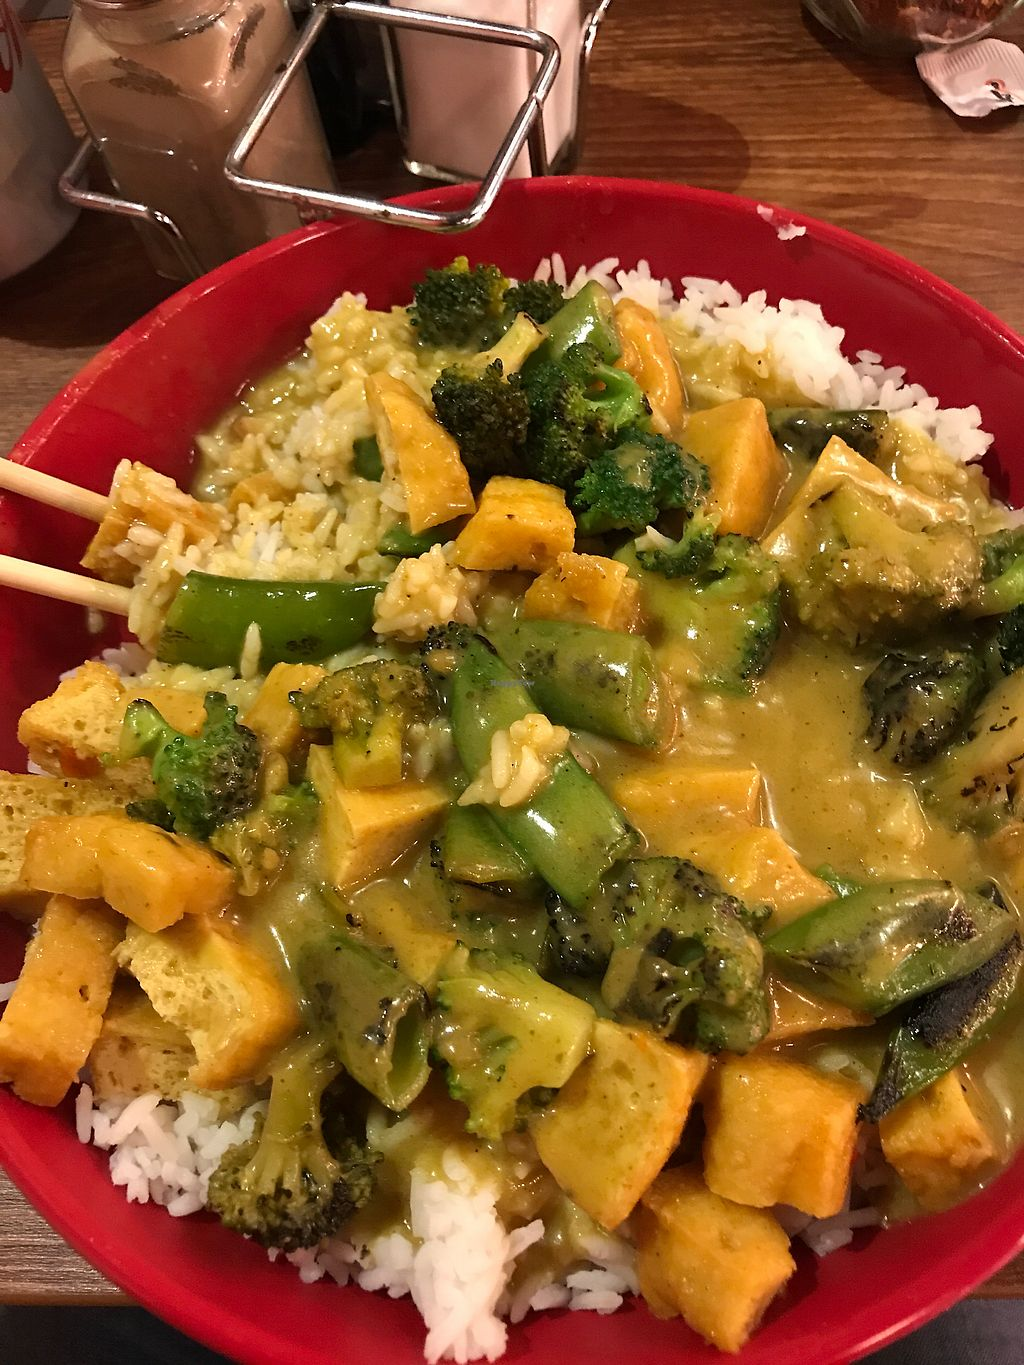 """Photo of Dr Noodles  by <a href=""""/members/profile/NathalieMarshall"""">NathalieMarshall</a> <br/>Tofu veg coconut curry & rice <br/> August 12, 2017  - <a href='/contact/abuse/image/98472/292036'>Report</a>"""